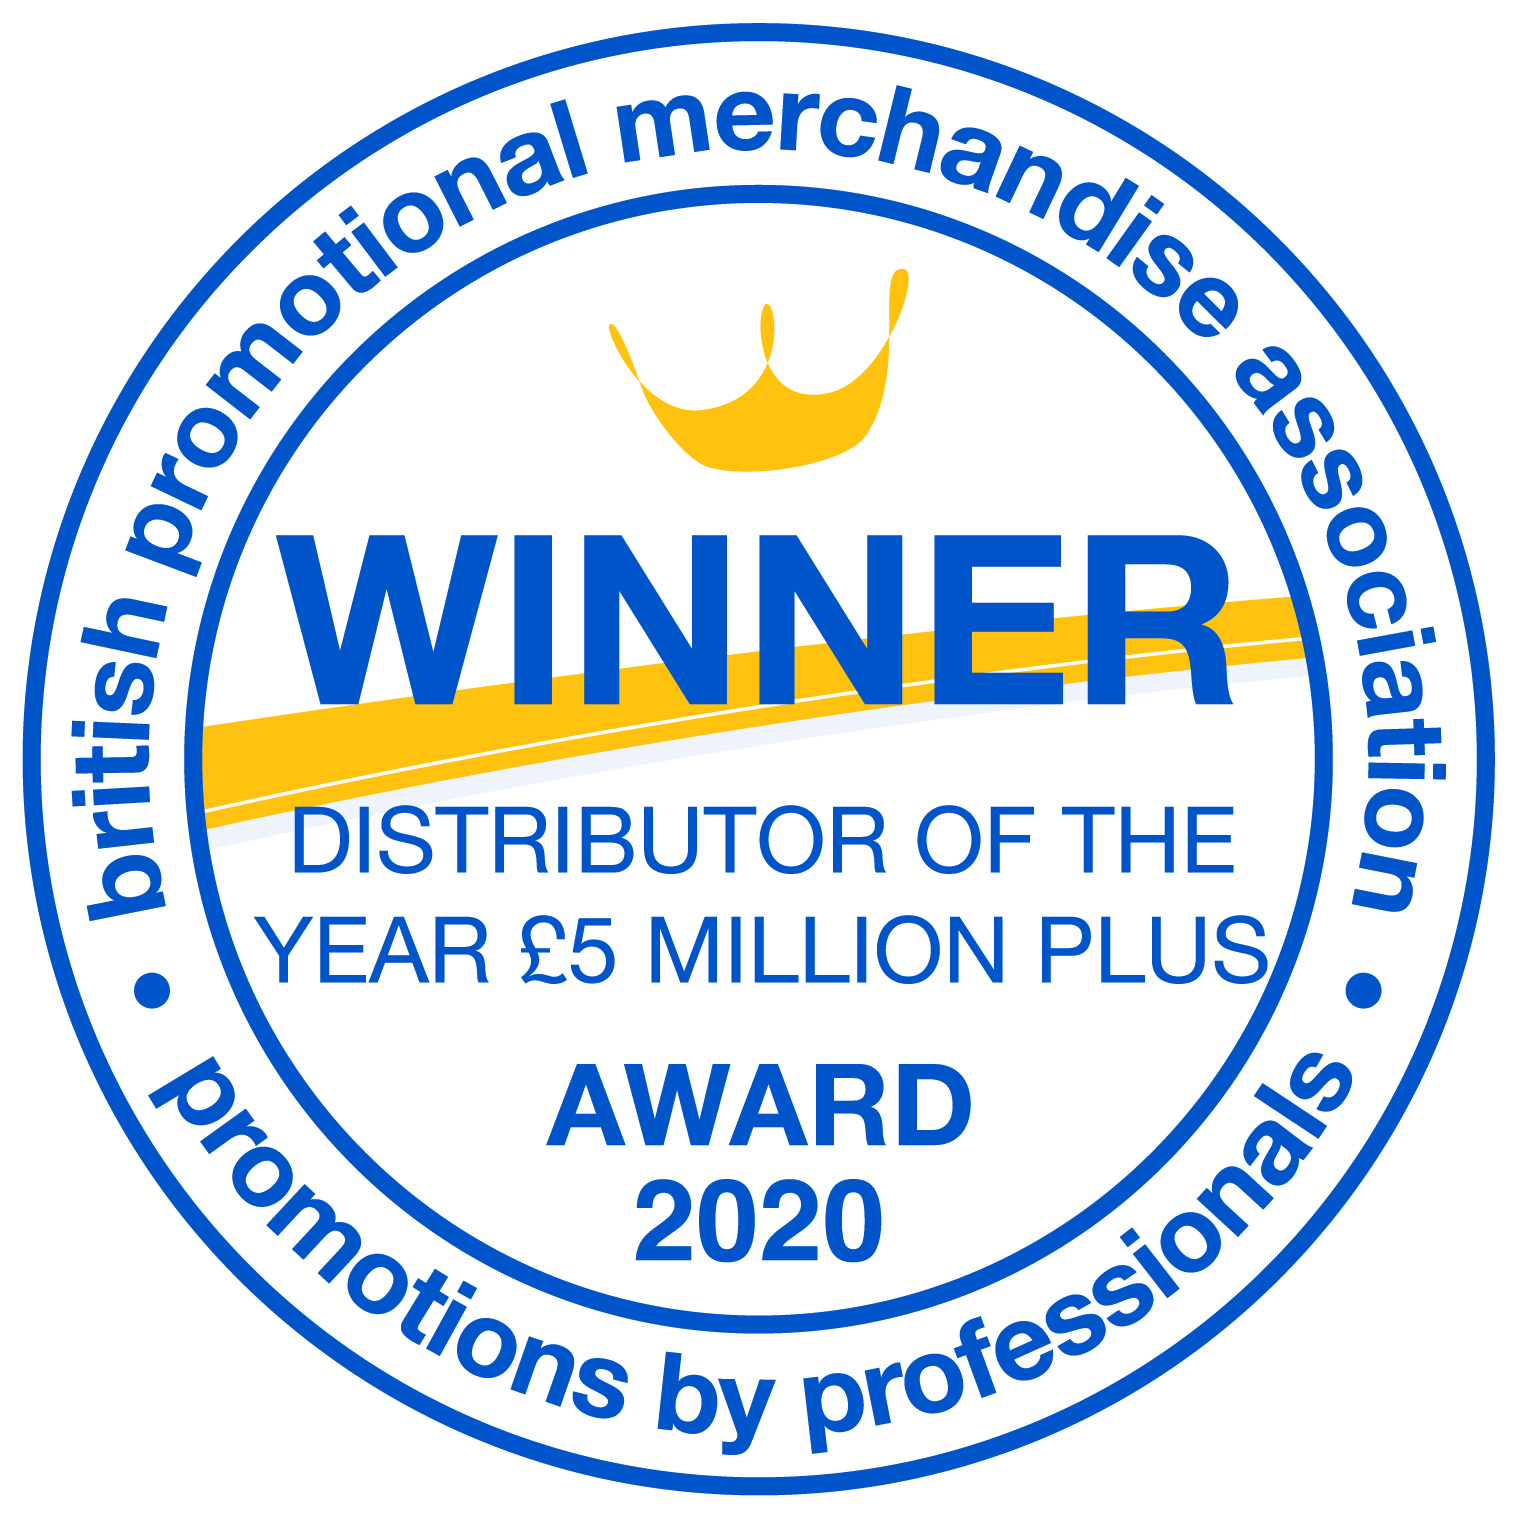 Total Merchandise wins Promotional Merchandise Distributor of the Year 2020